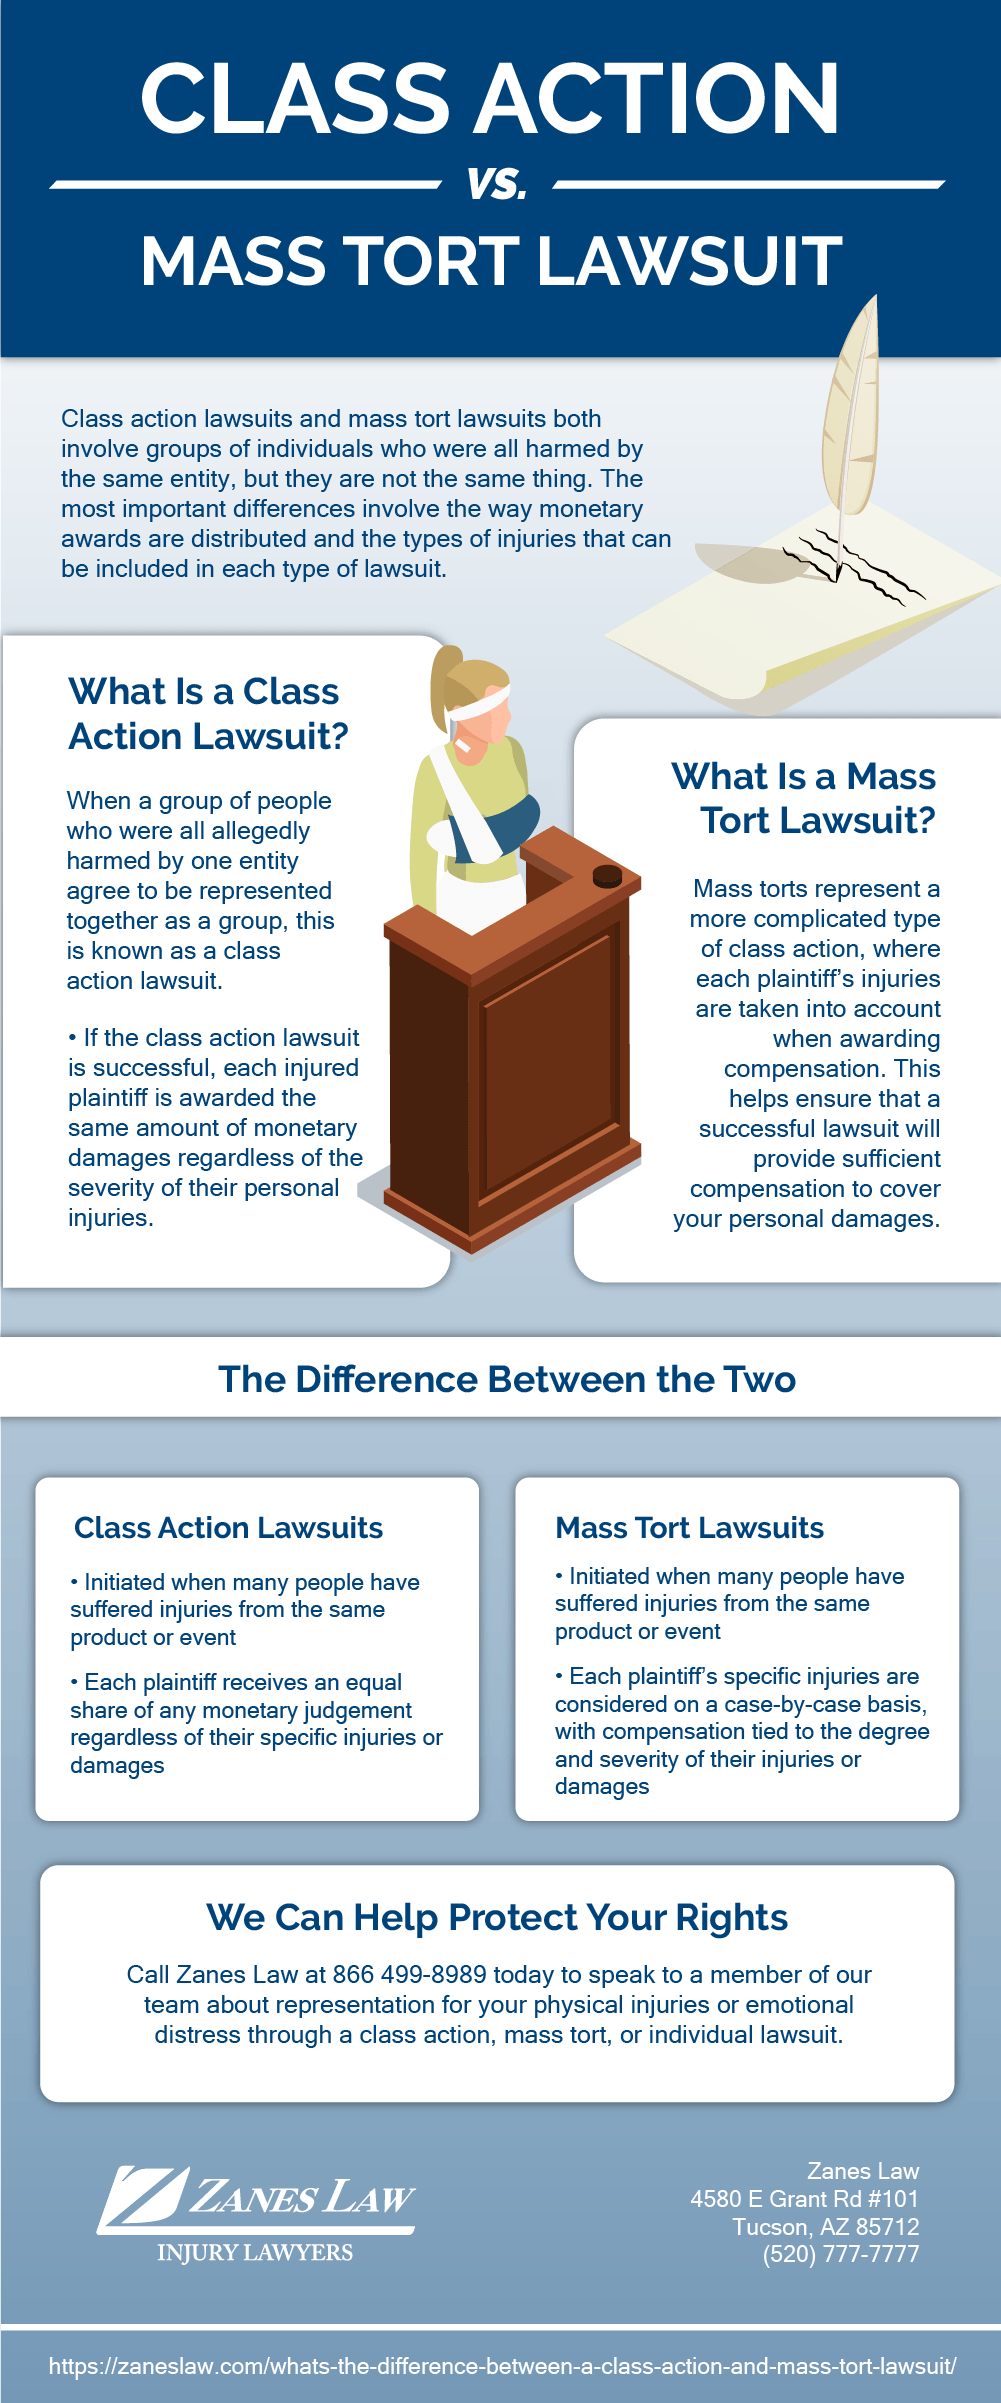 Difference Between a Class Action and Mass Tort Lawsuit